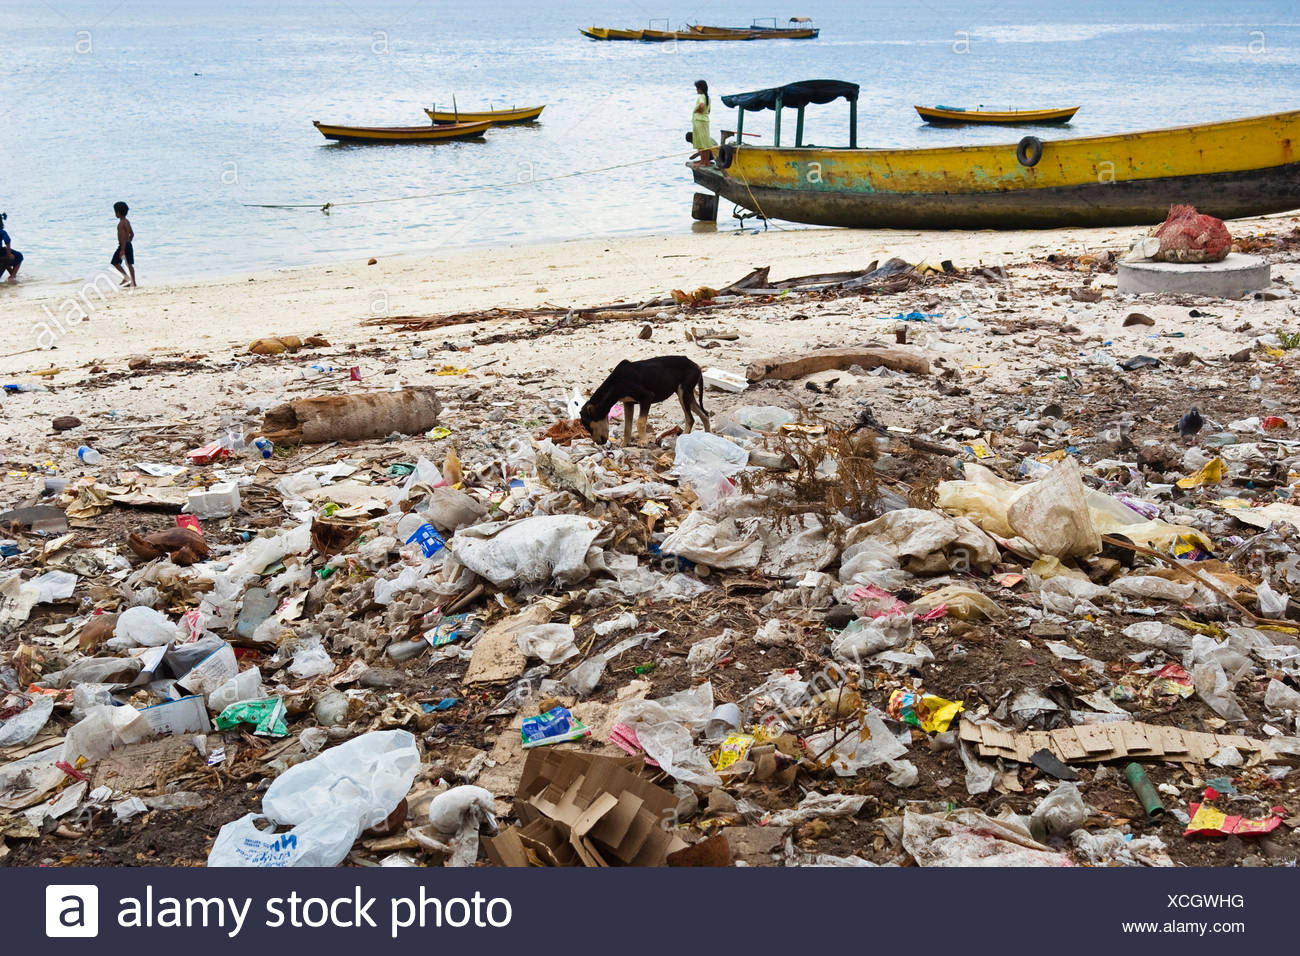 domestic dog (Canis lupus f. familiaris), dog at the beach amidst garbage, India, Andaman Islands - Stock Image